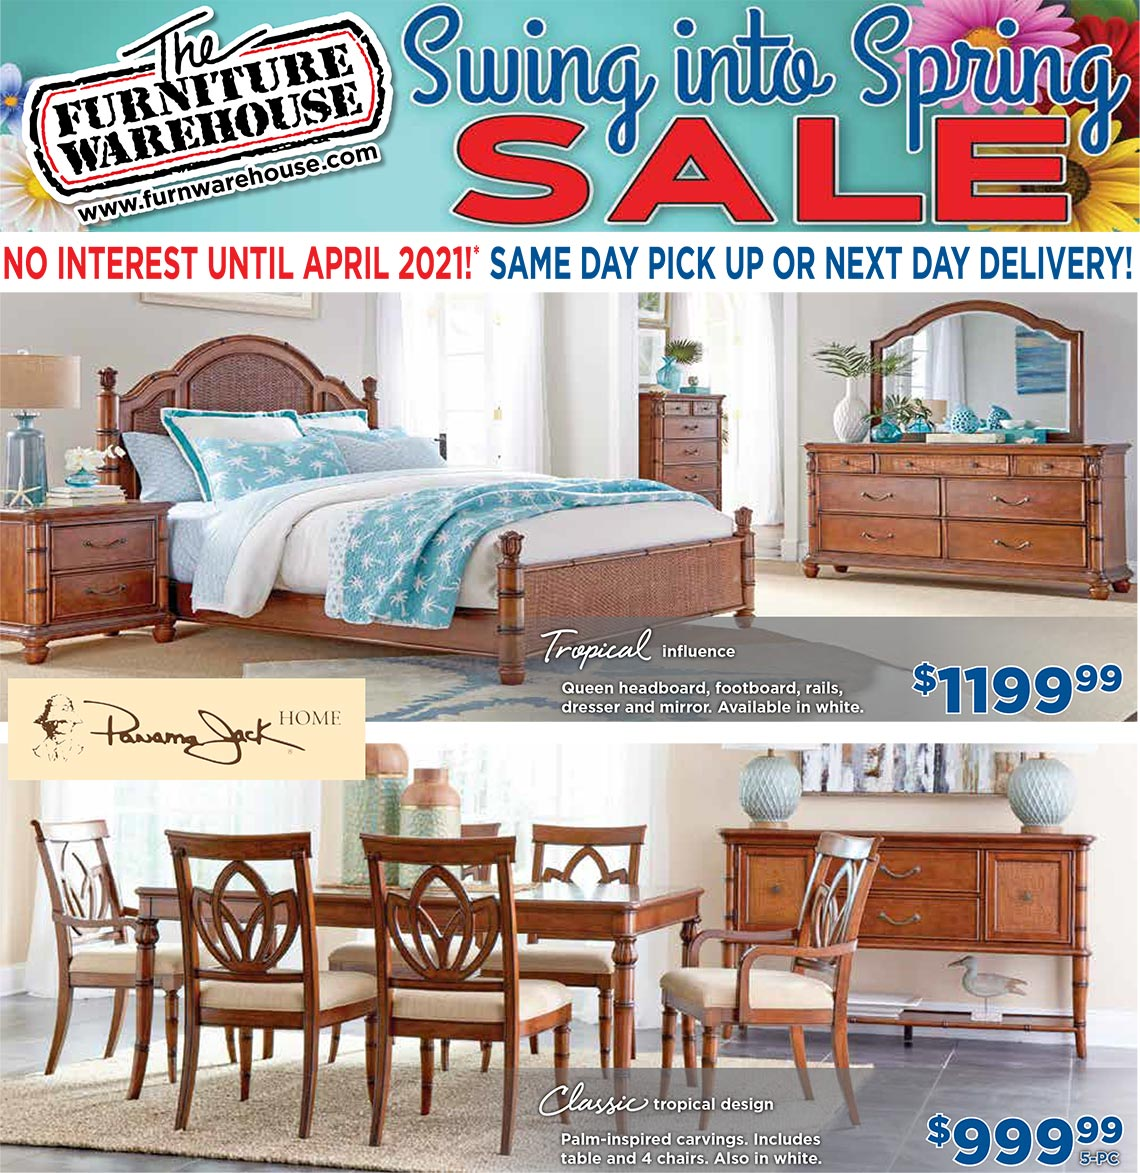 The Furniture Warehouse Newspaper - Page 1